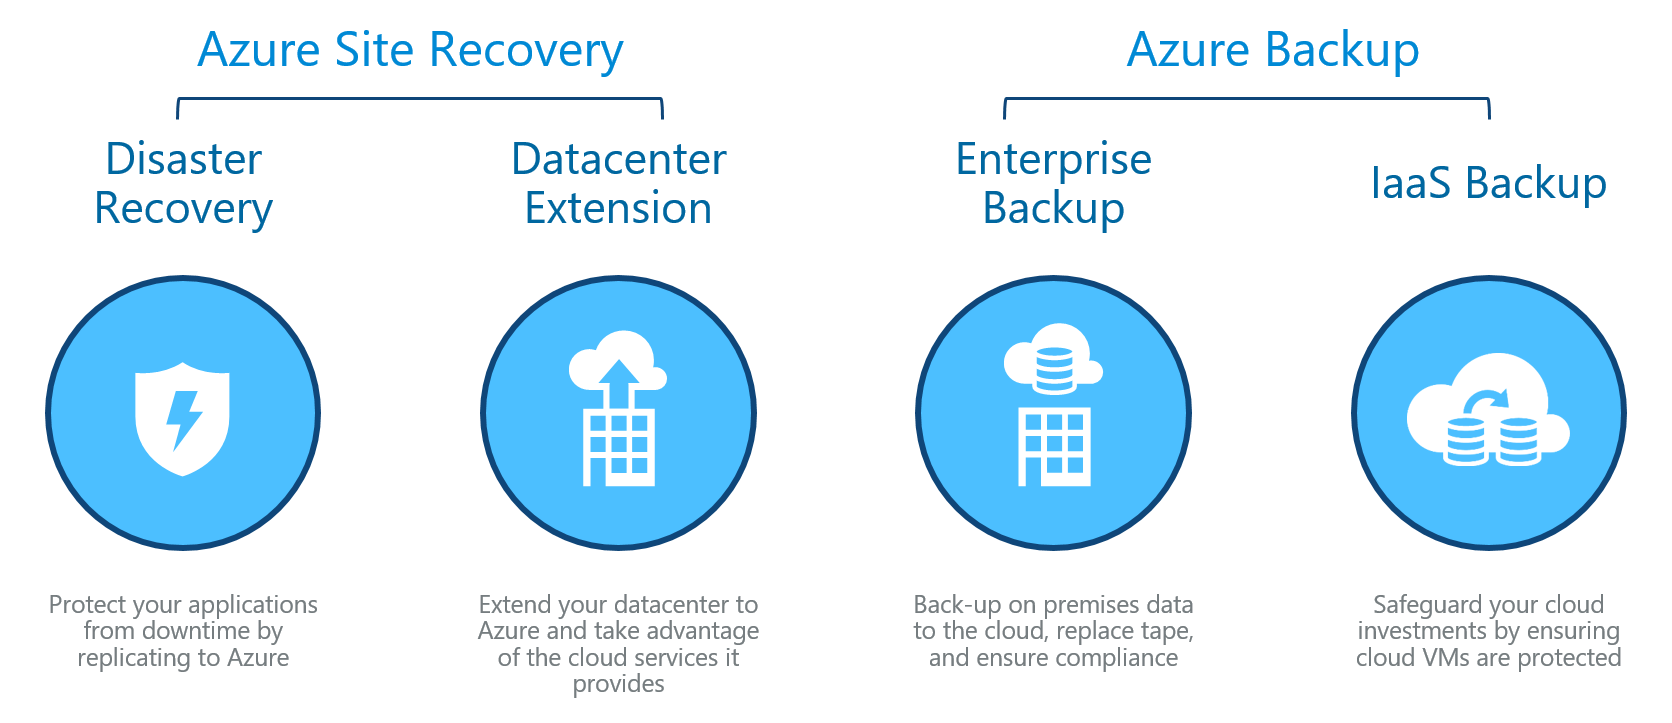 Azure Backup Vs Azure Site Recovery